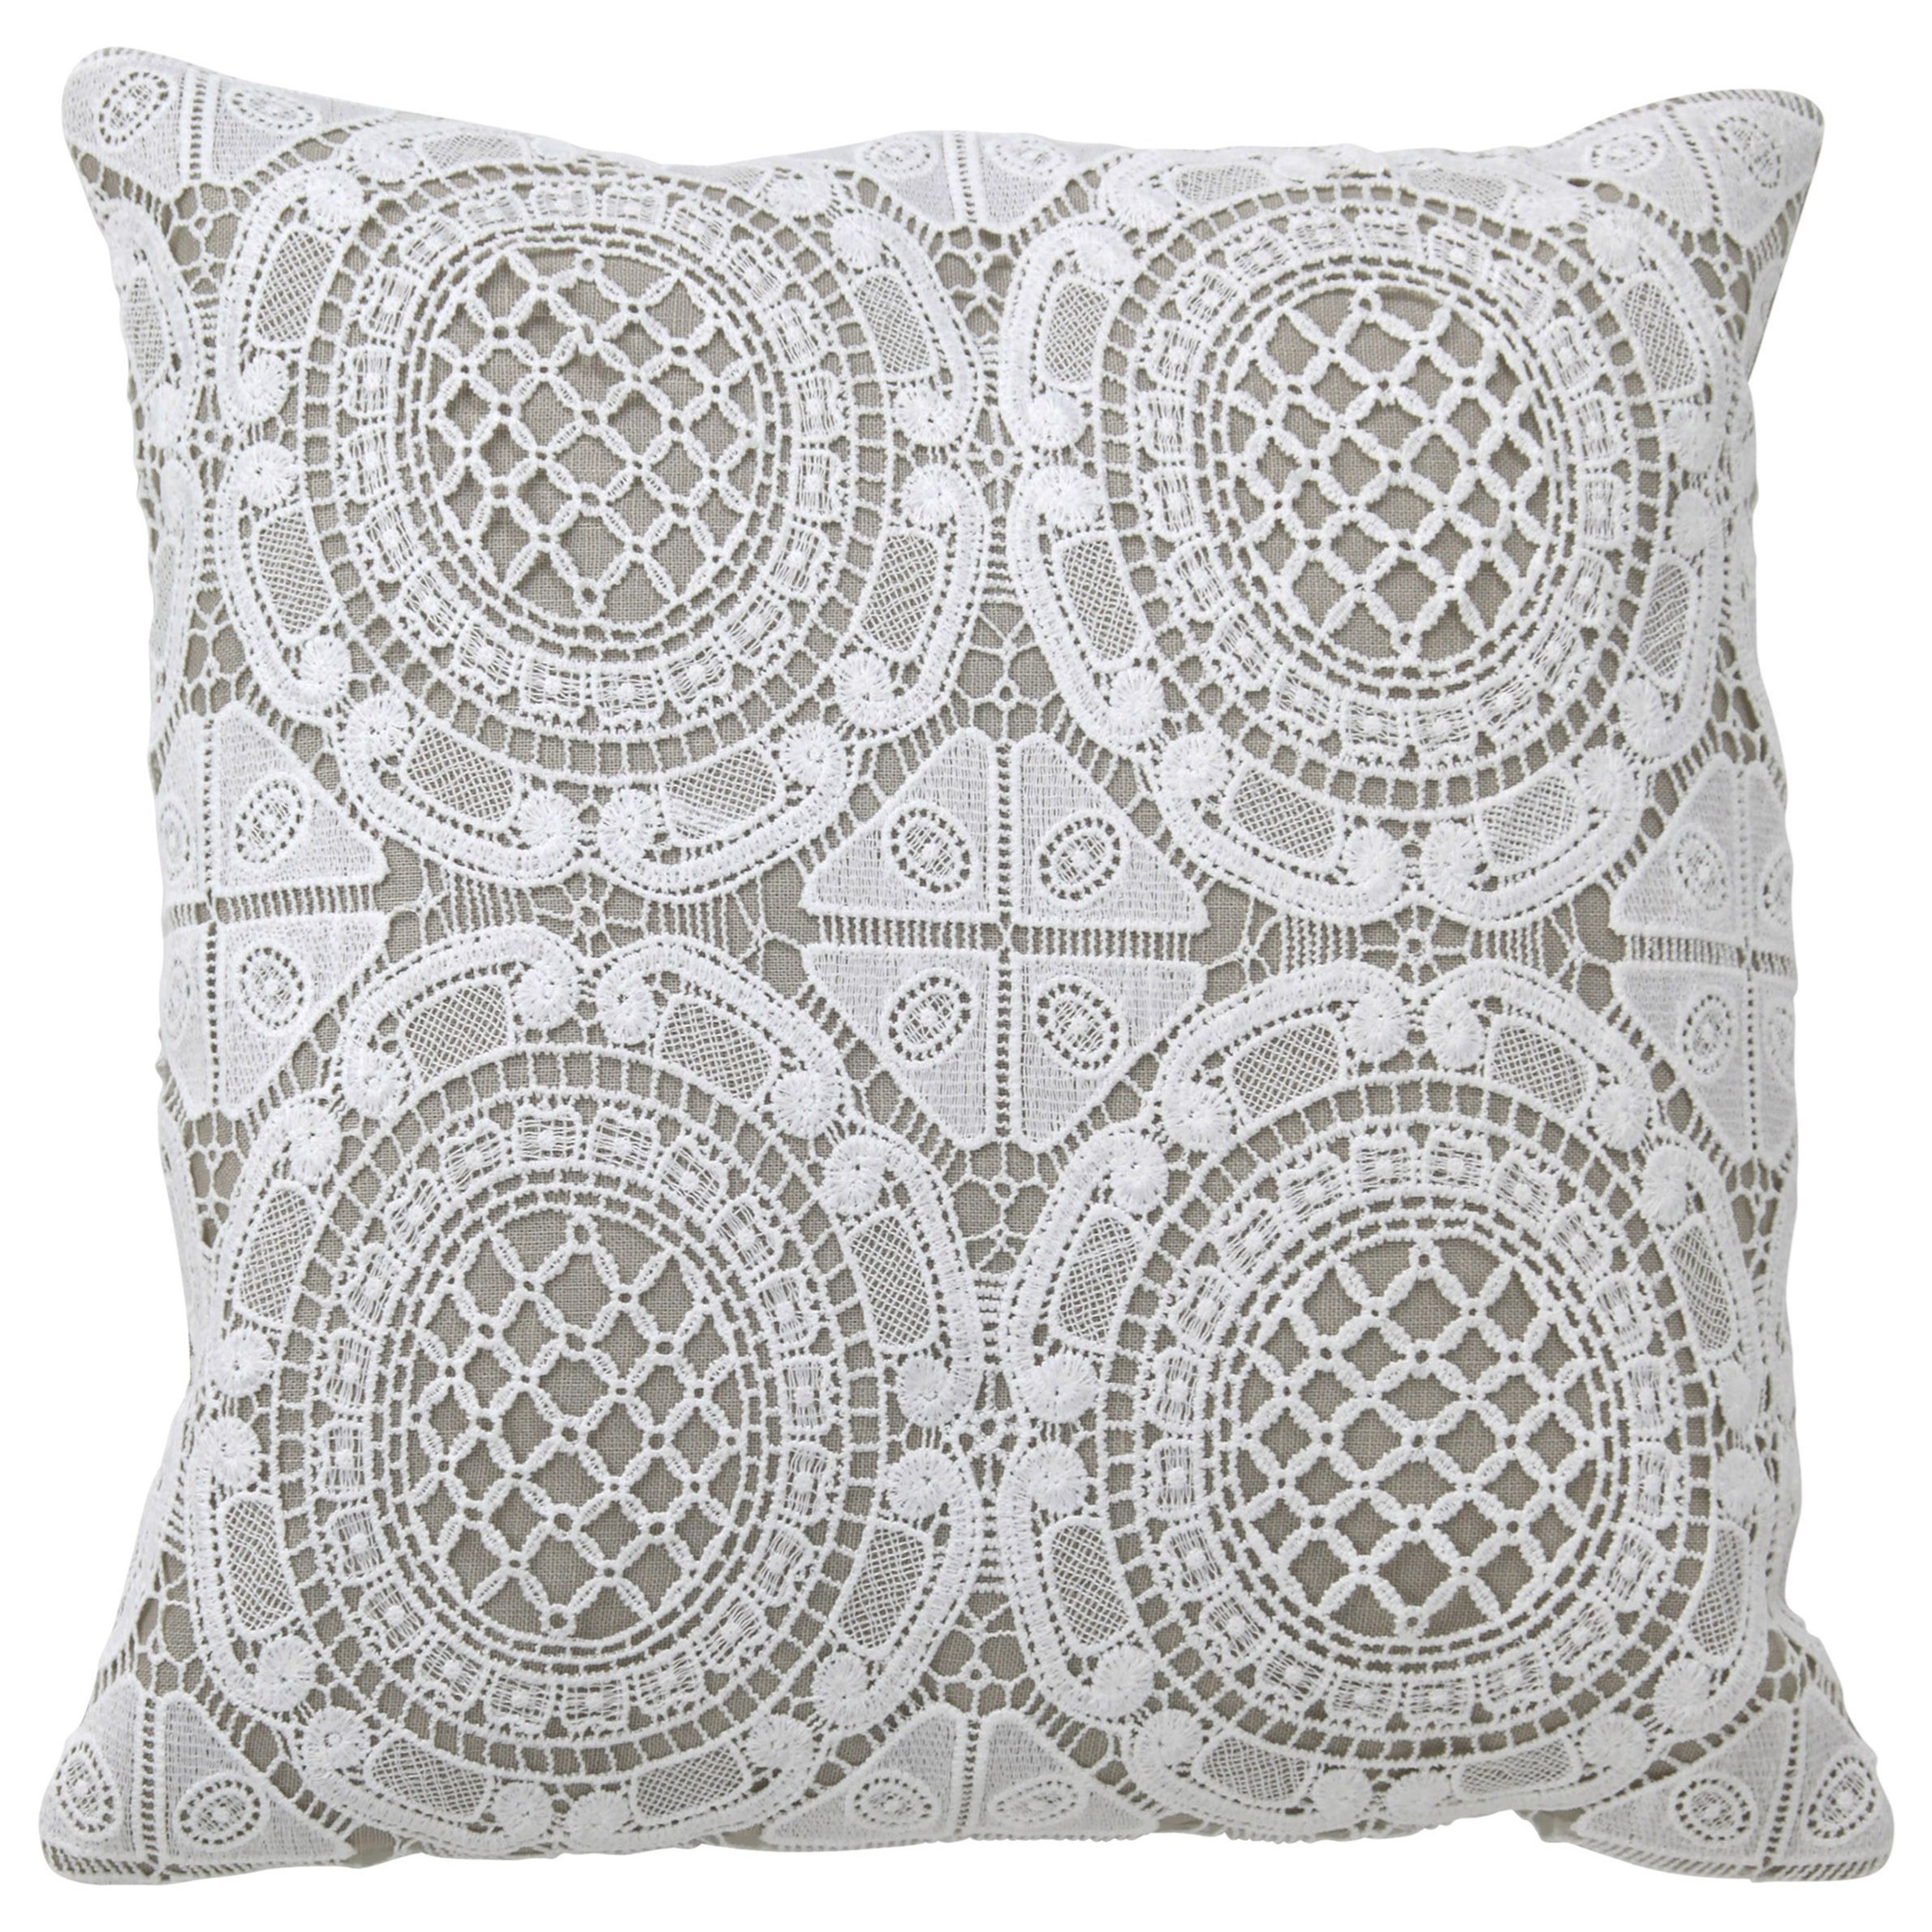 Accessories Gray/White Accent Pillow by StyleCraft at Alison Craig Home Furnishings